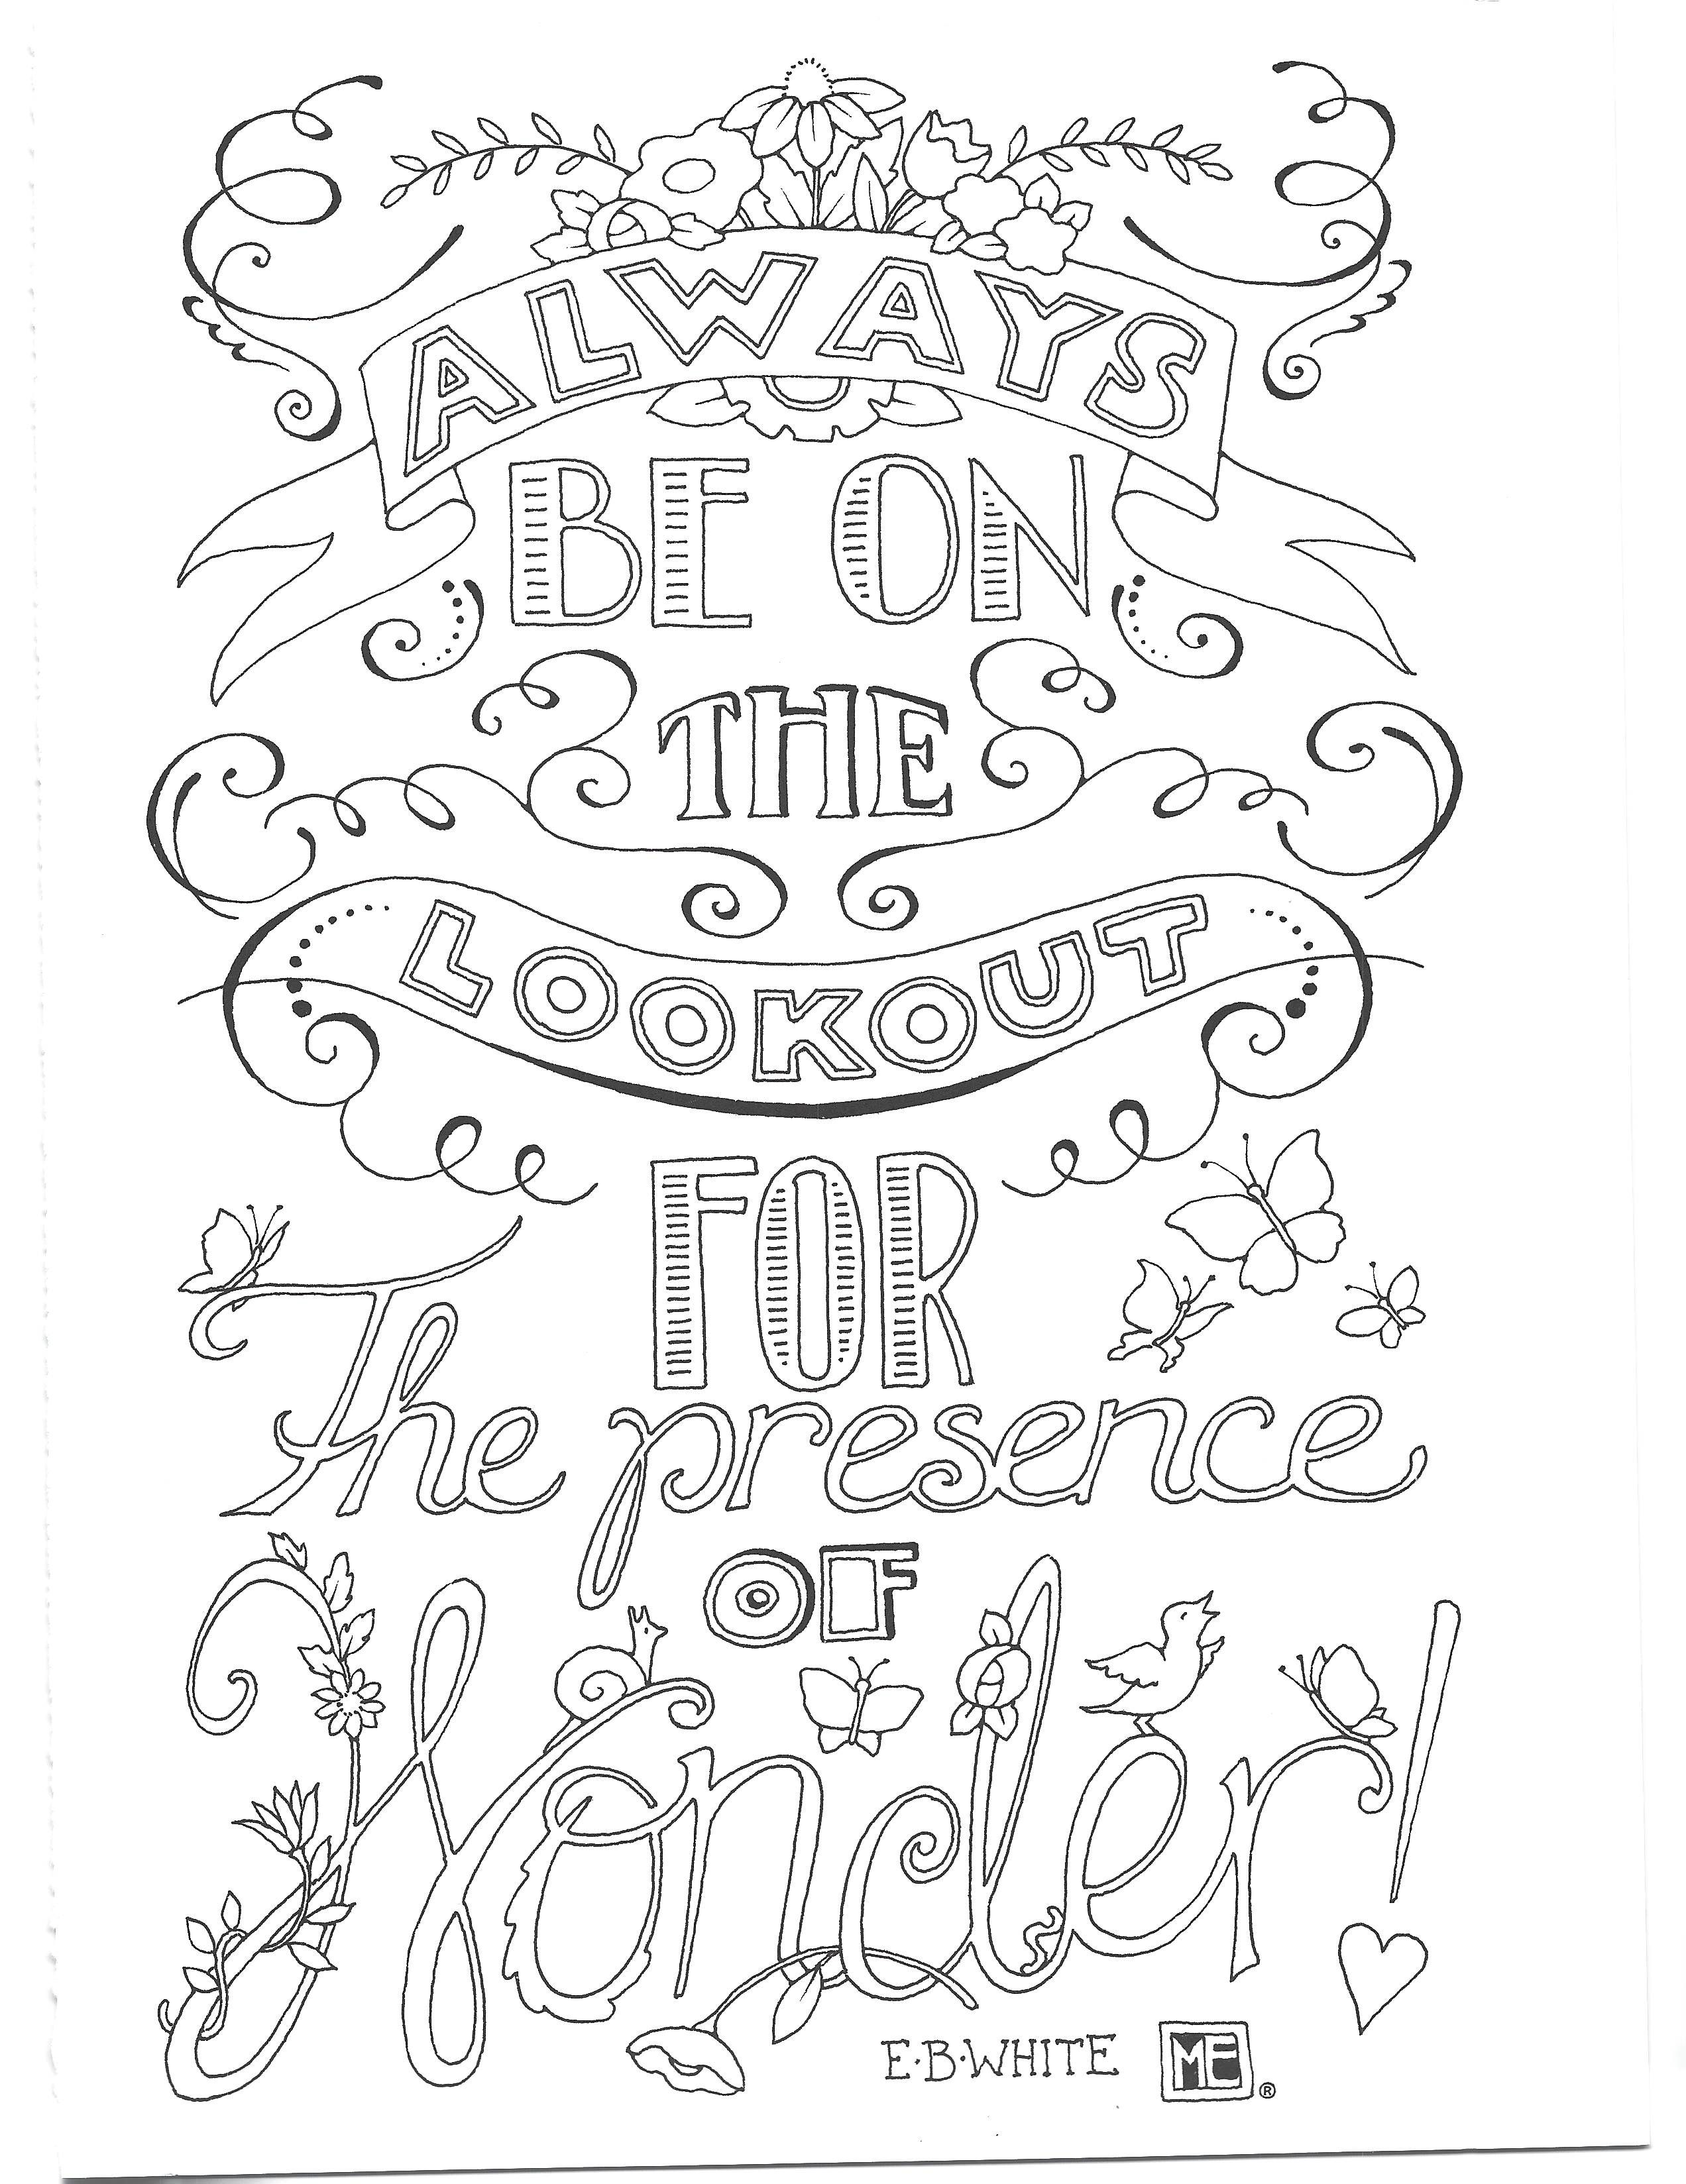 Pin By Barbara Ames On Coloring Coloring Books Printable Coloring Pages Coloring Pages